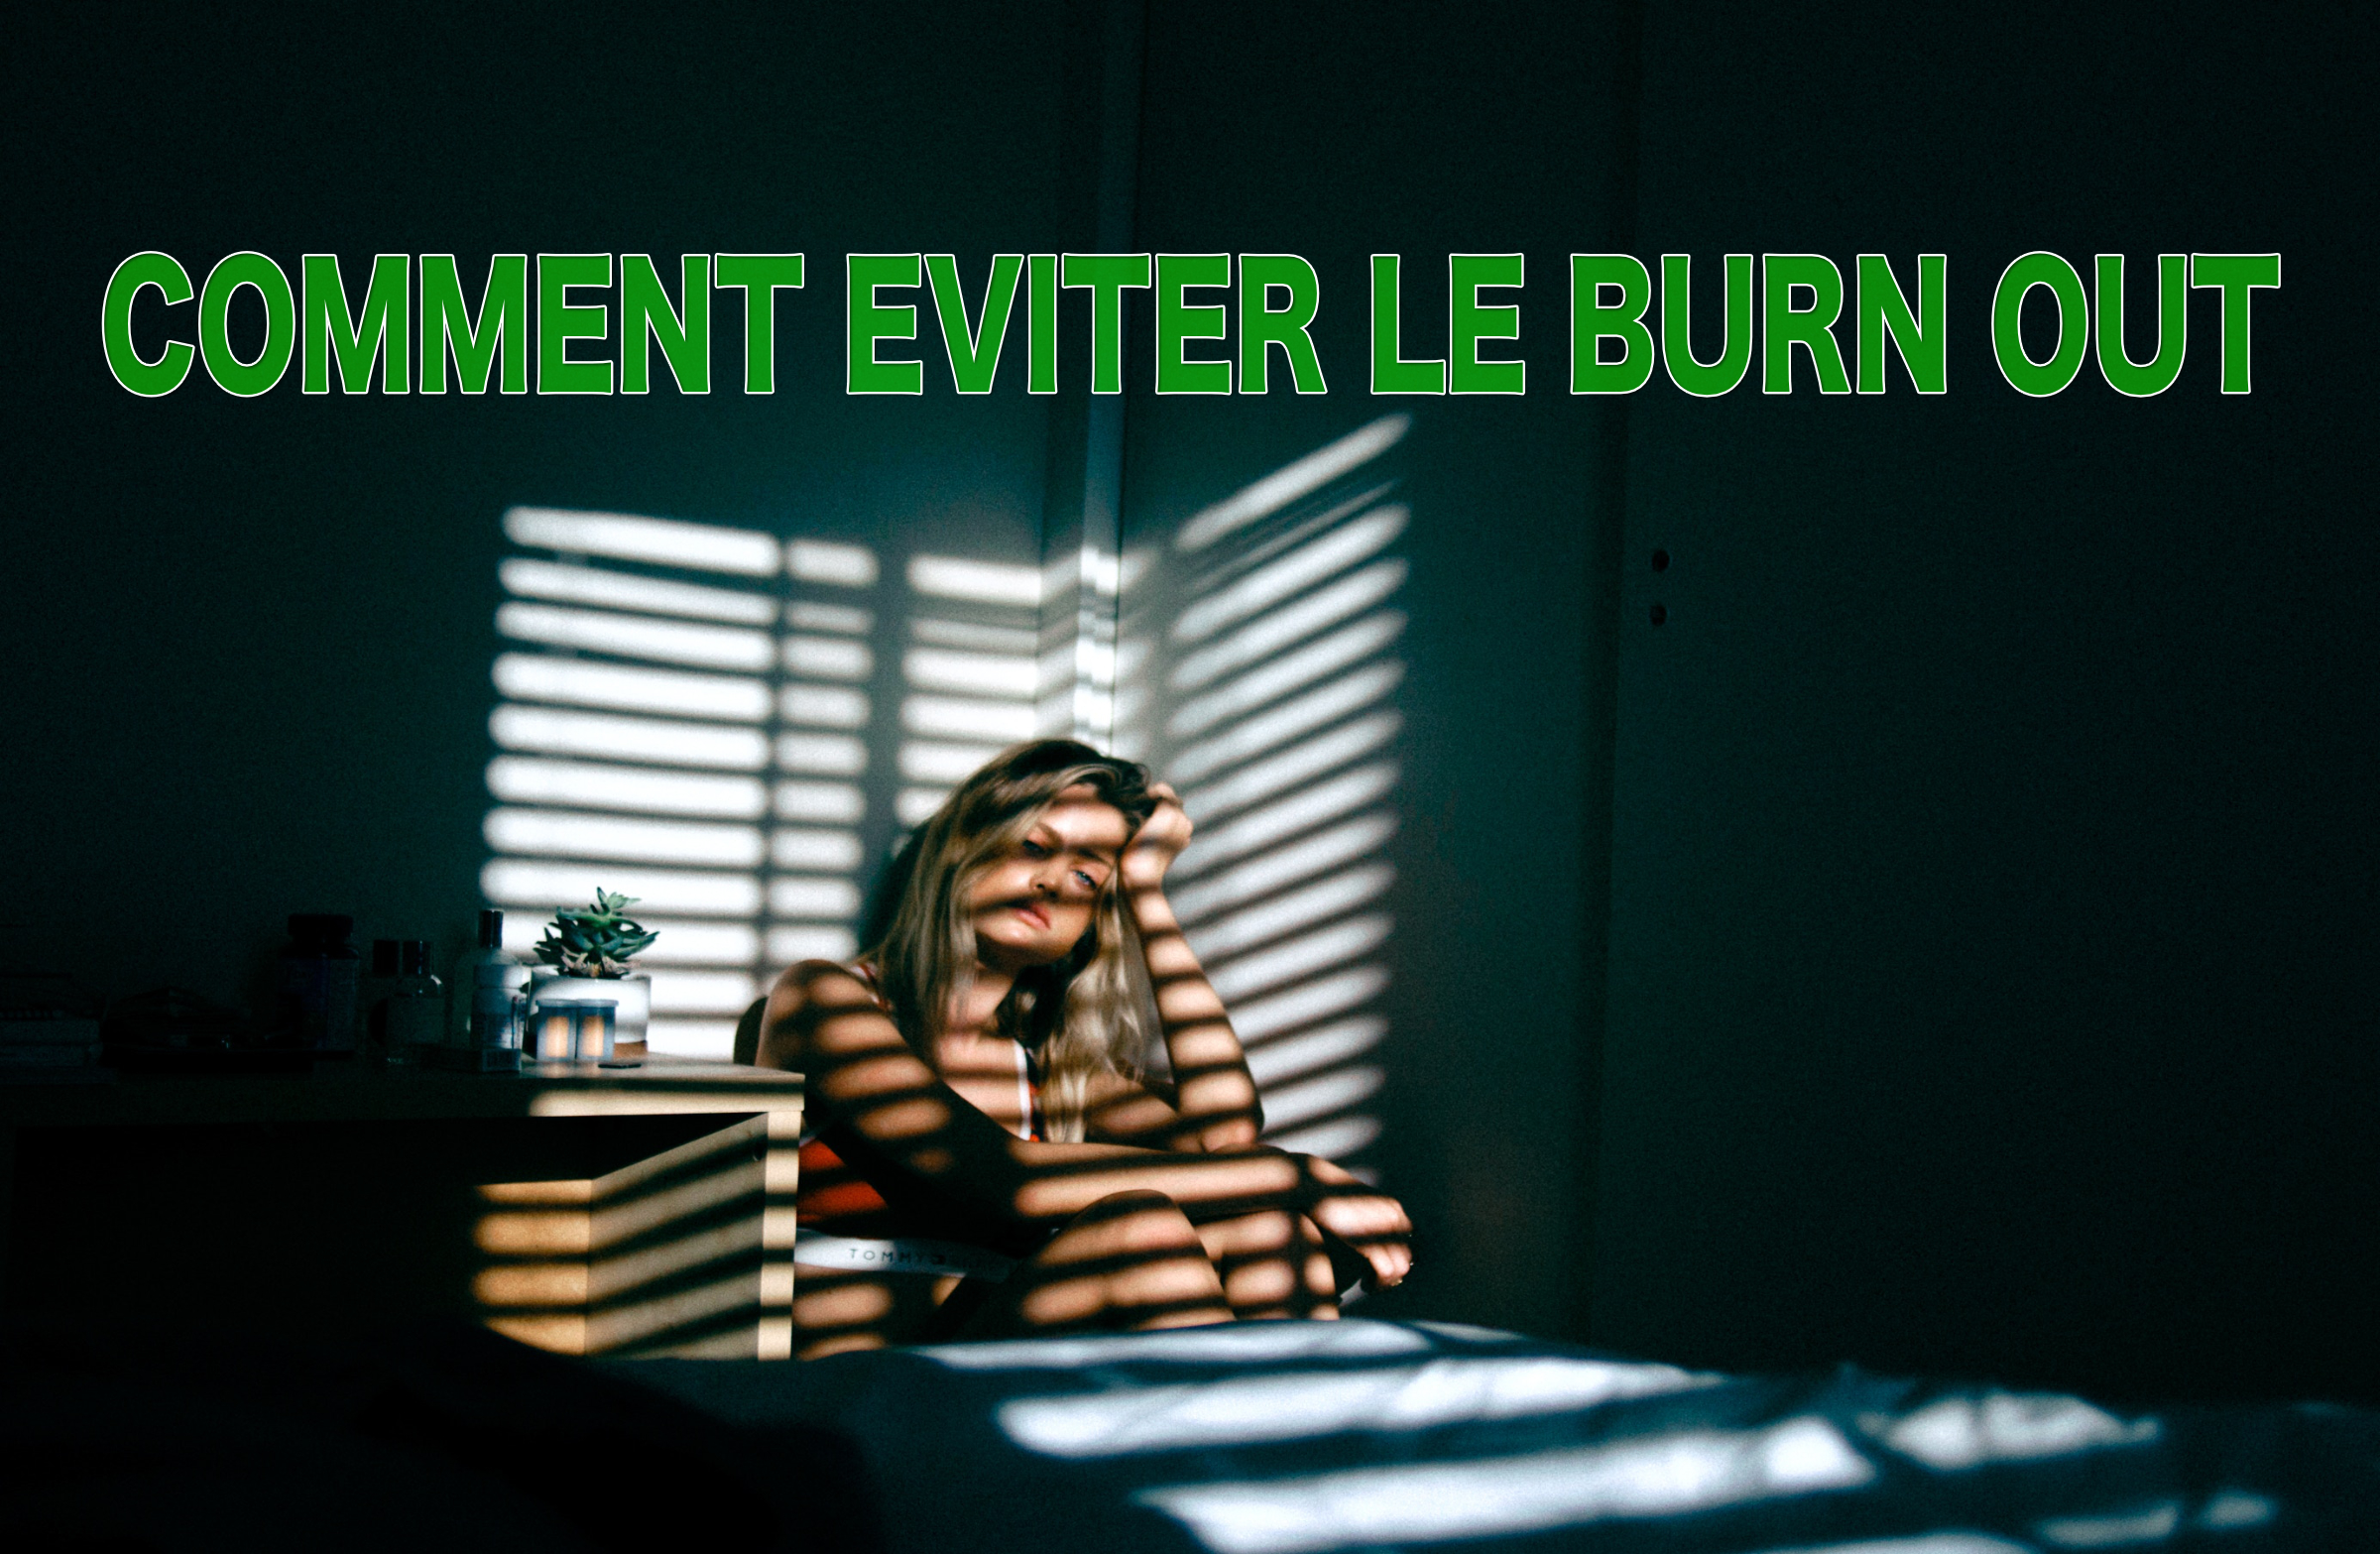 COMMENT ÉVITER LE BURN-OUT